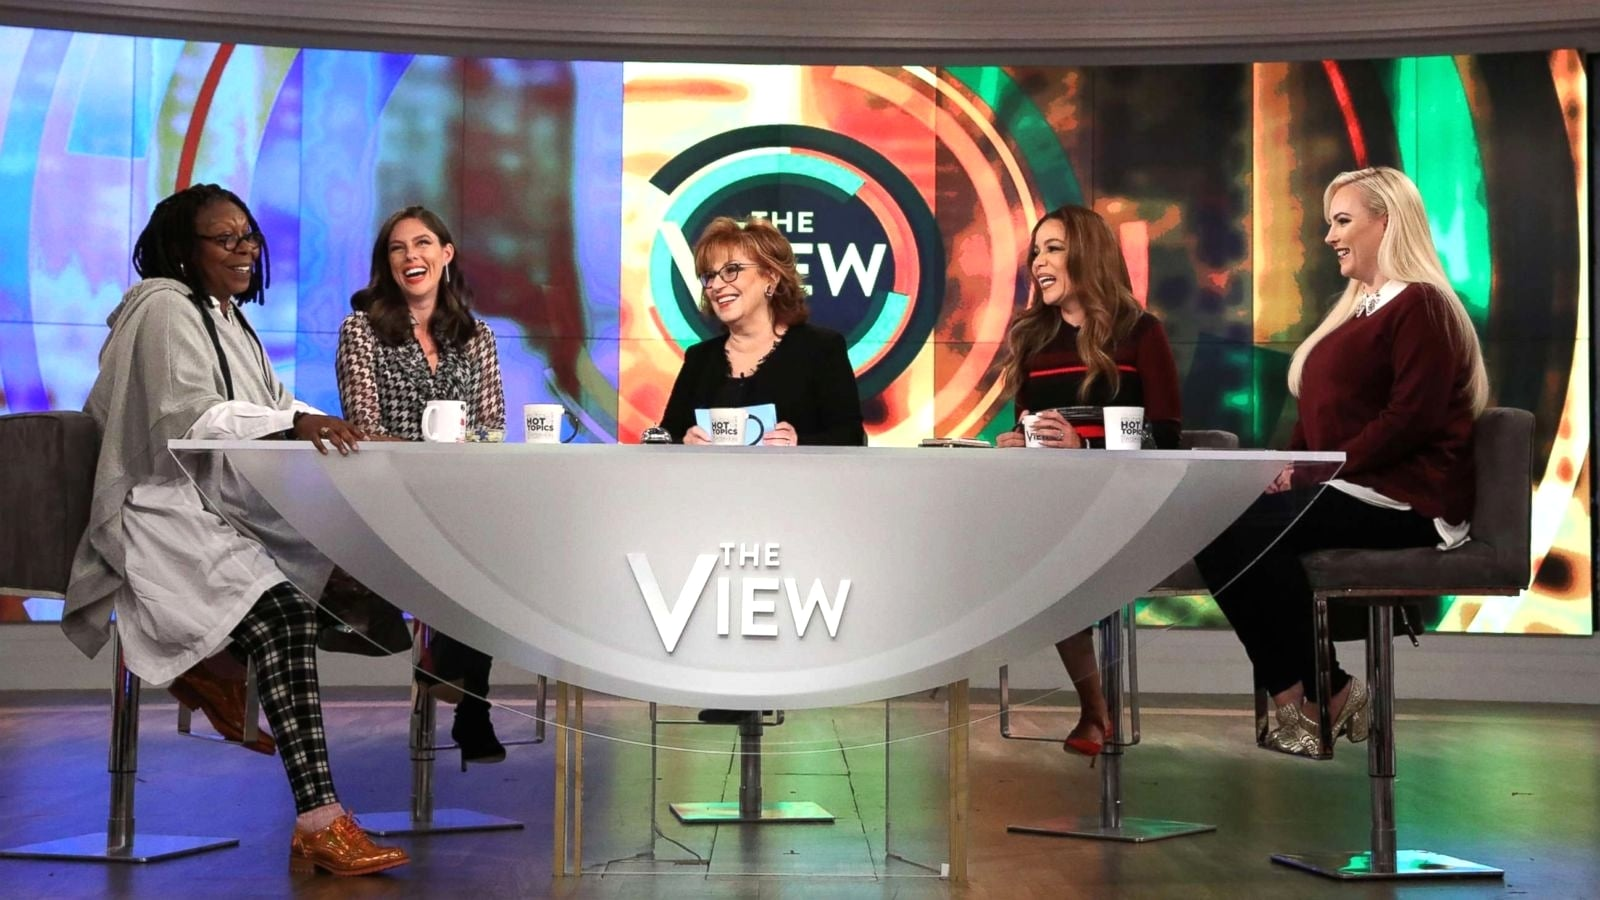 The View - Season 3 Episode 226 : Season 3, Episode 226